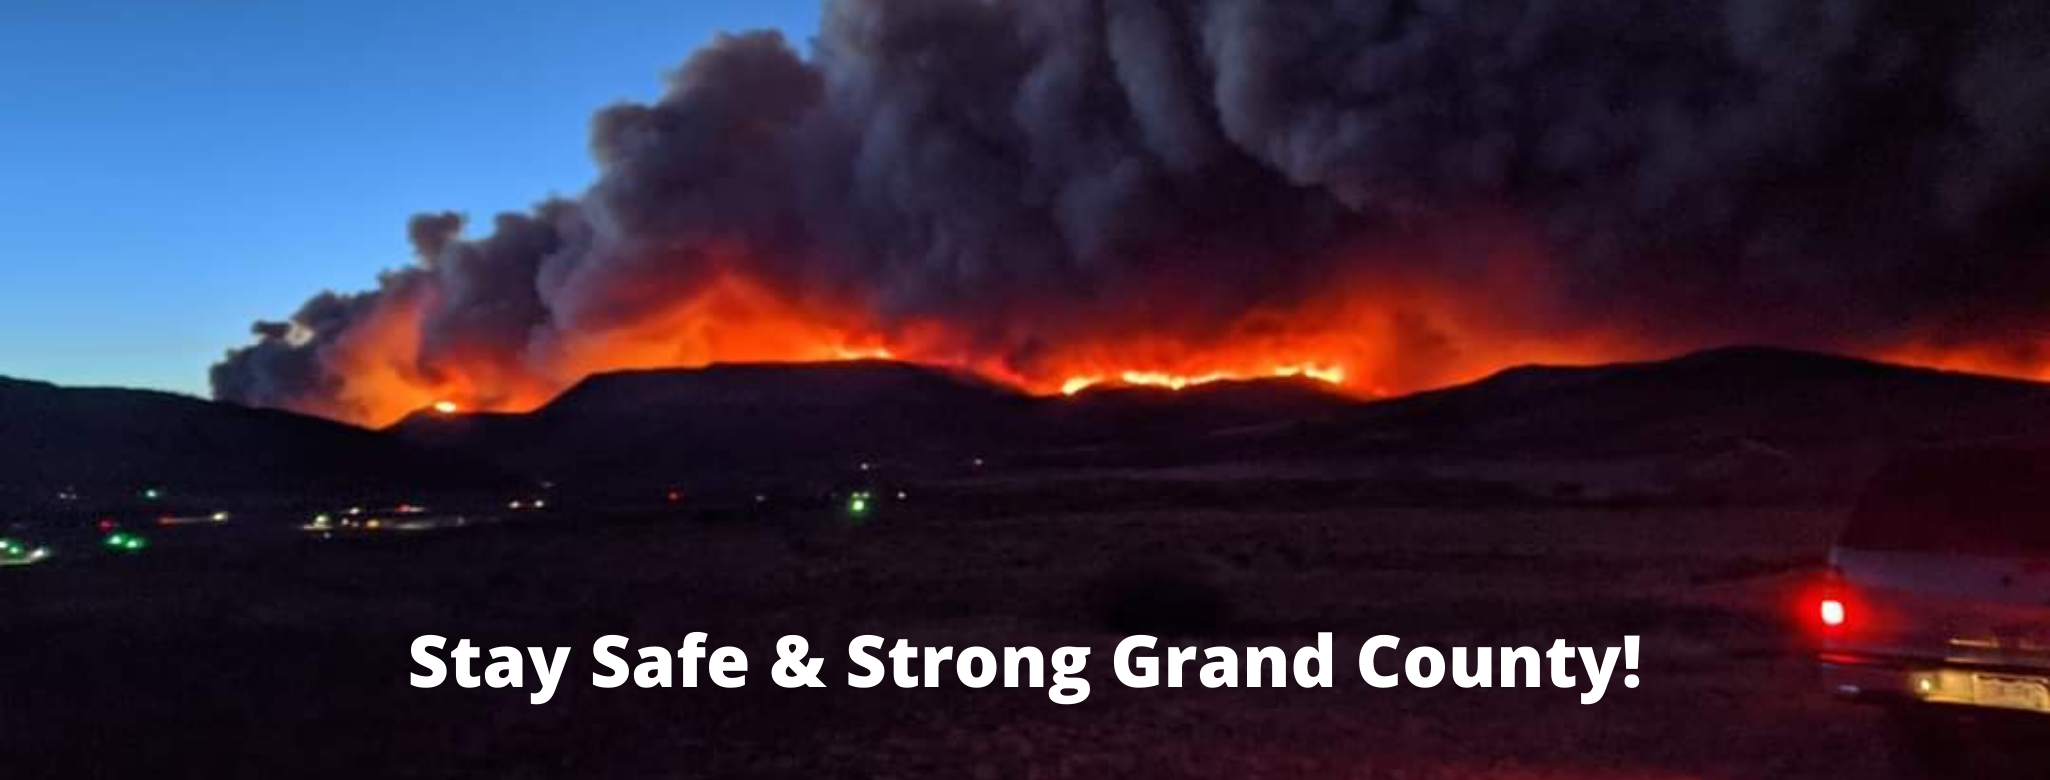 Stay Safe & Strong Grand County!